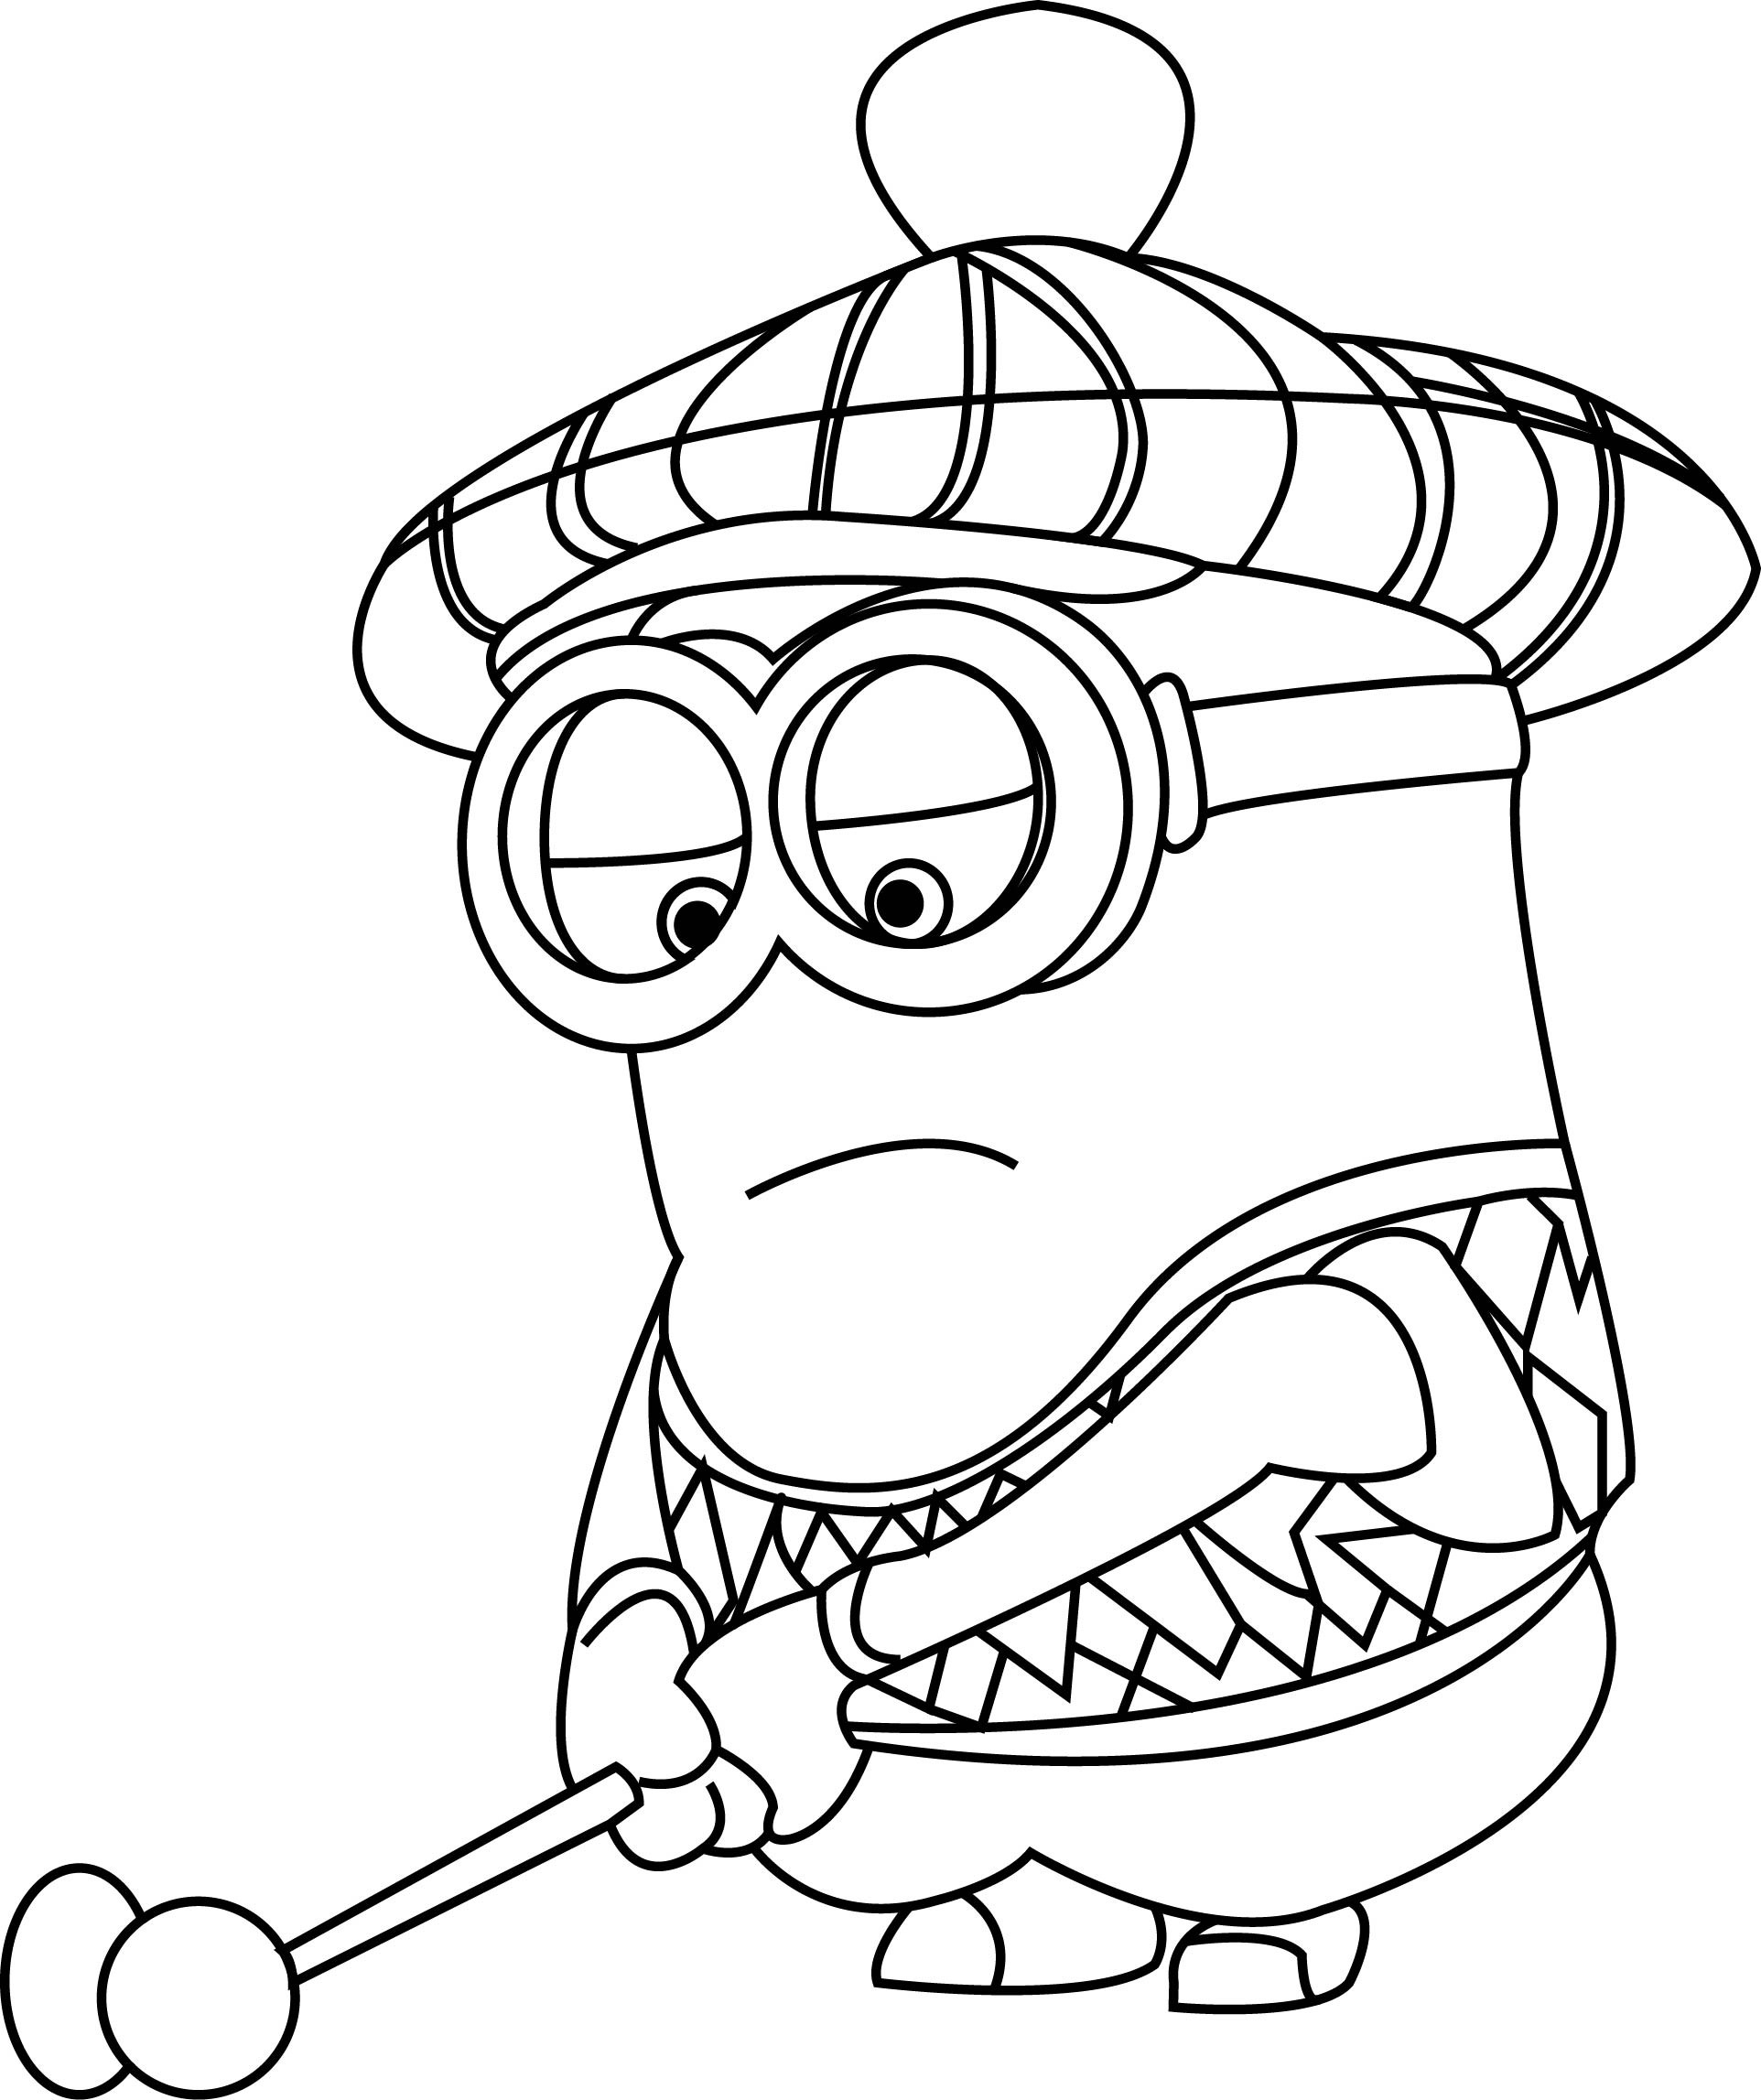 1924x2295 Golf Coloring Pages Adults Golf Coloring Pages Awesome Minion